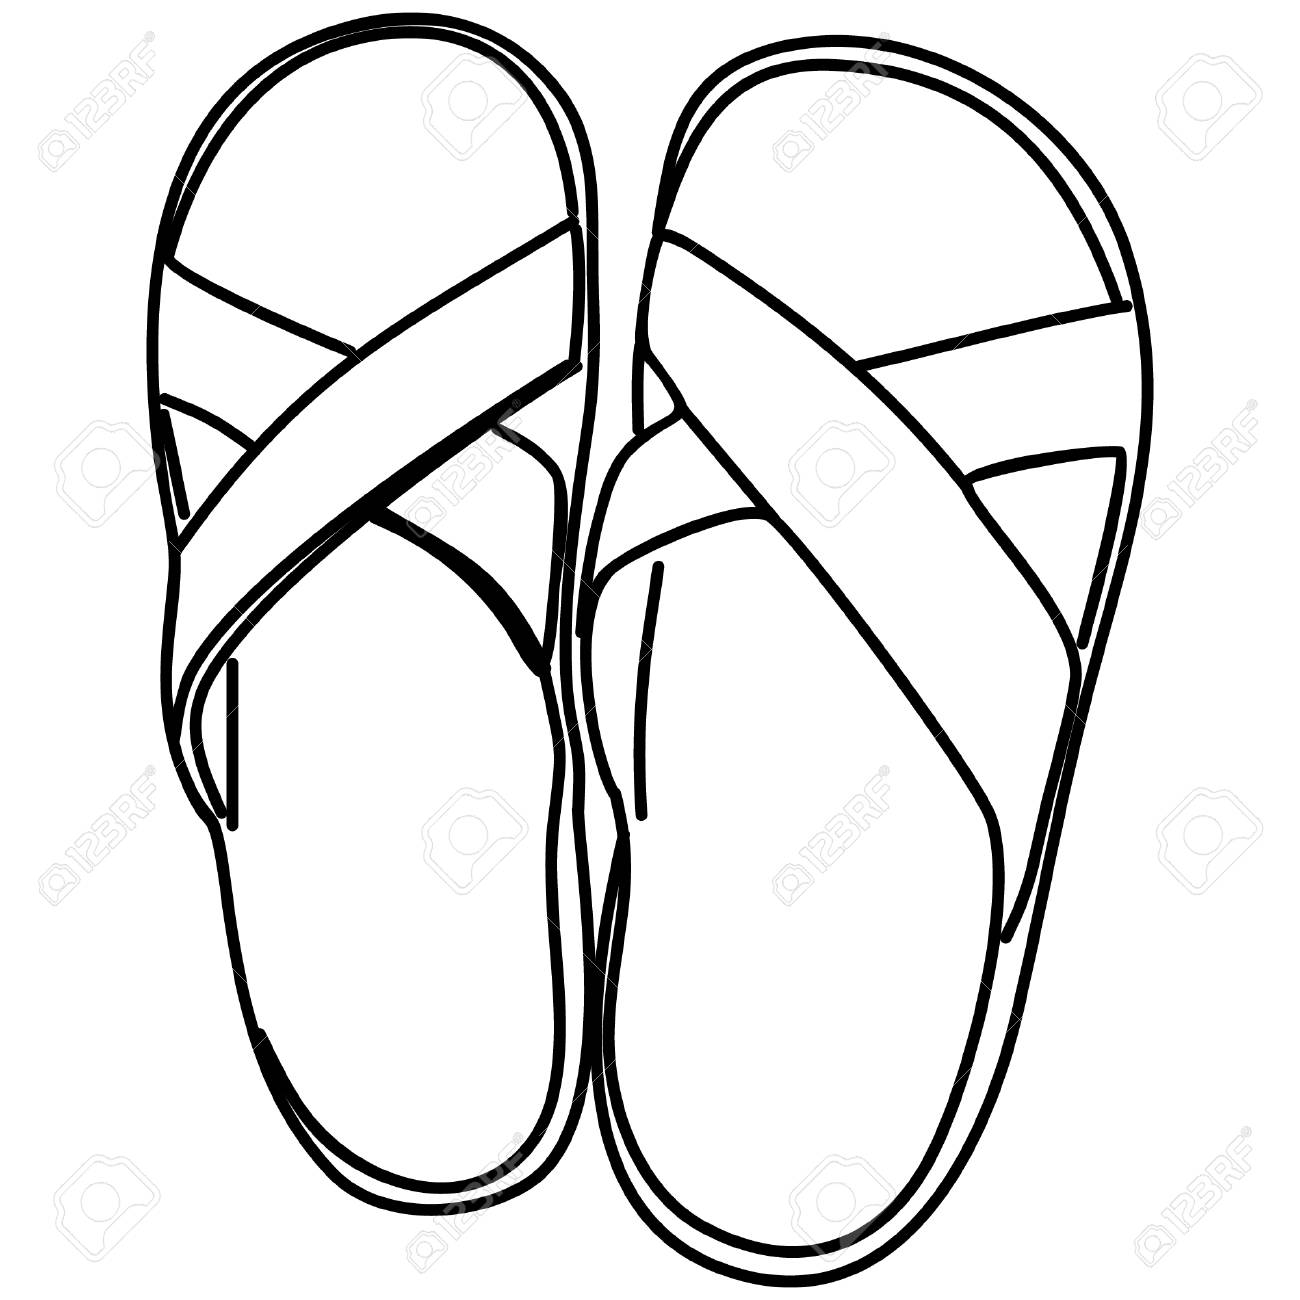 Slippers black and white clipart 6 » Clipart Station.